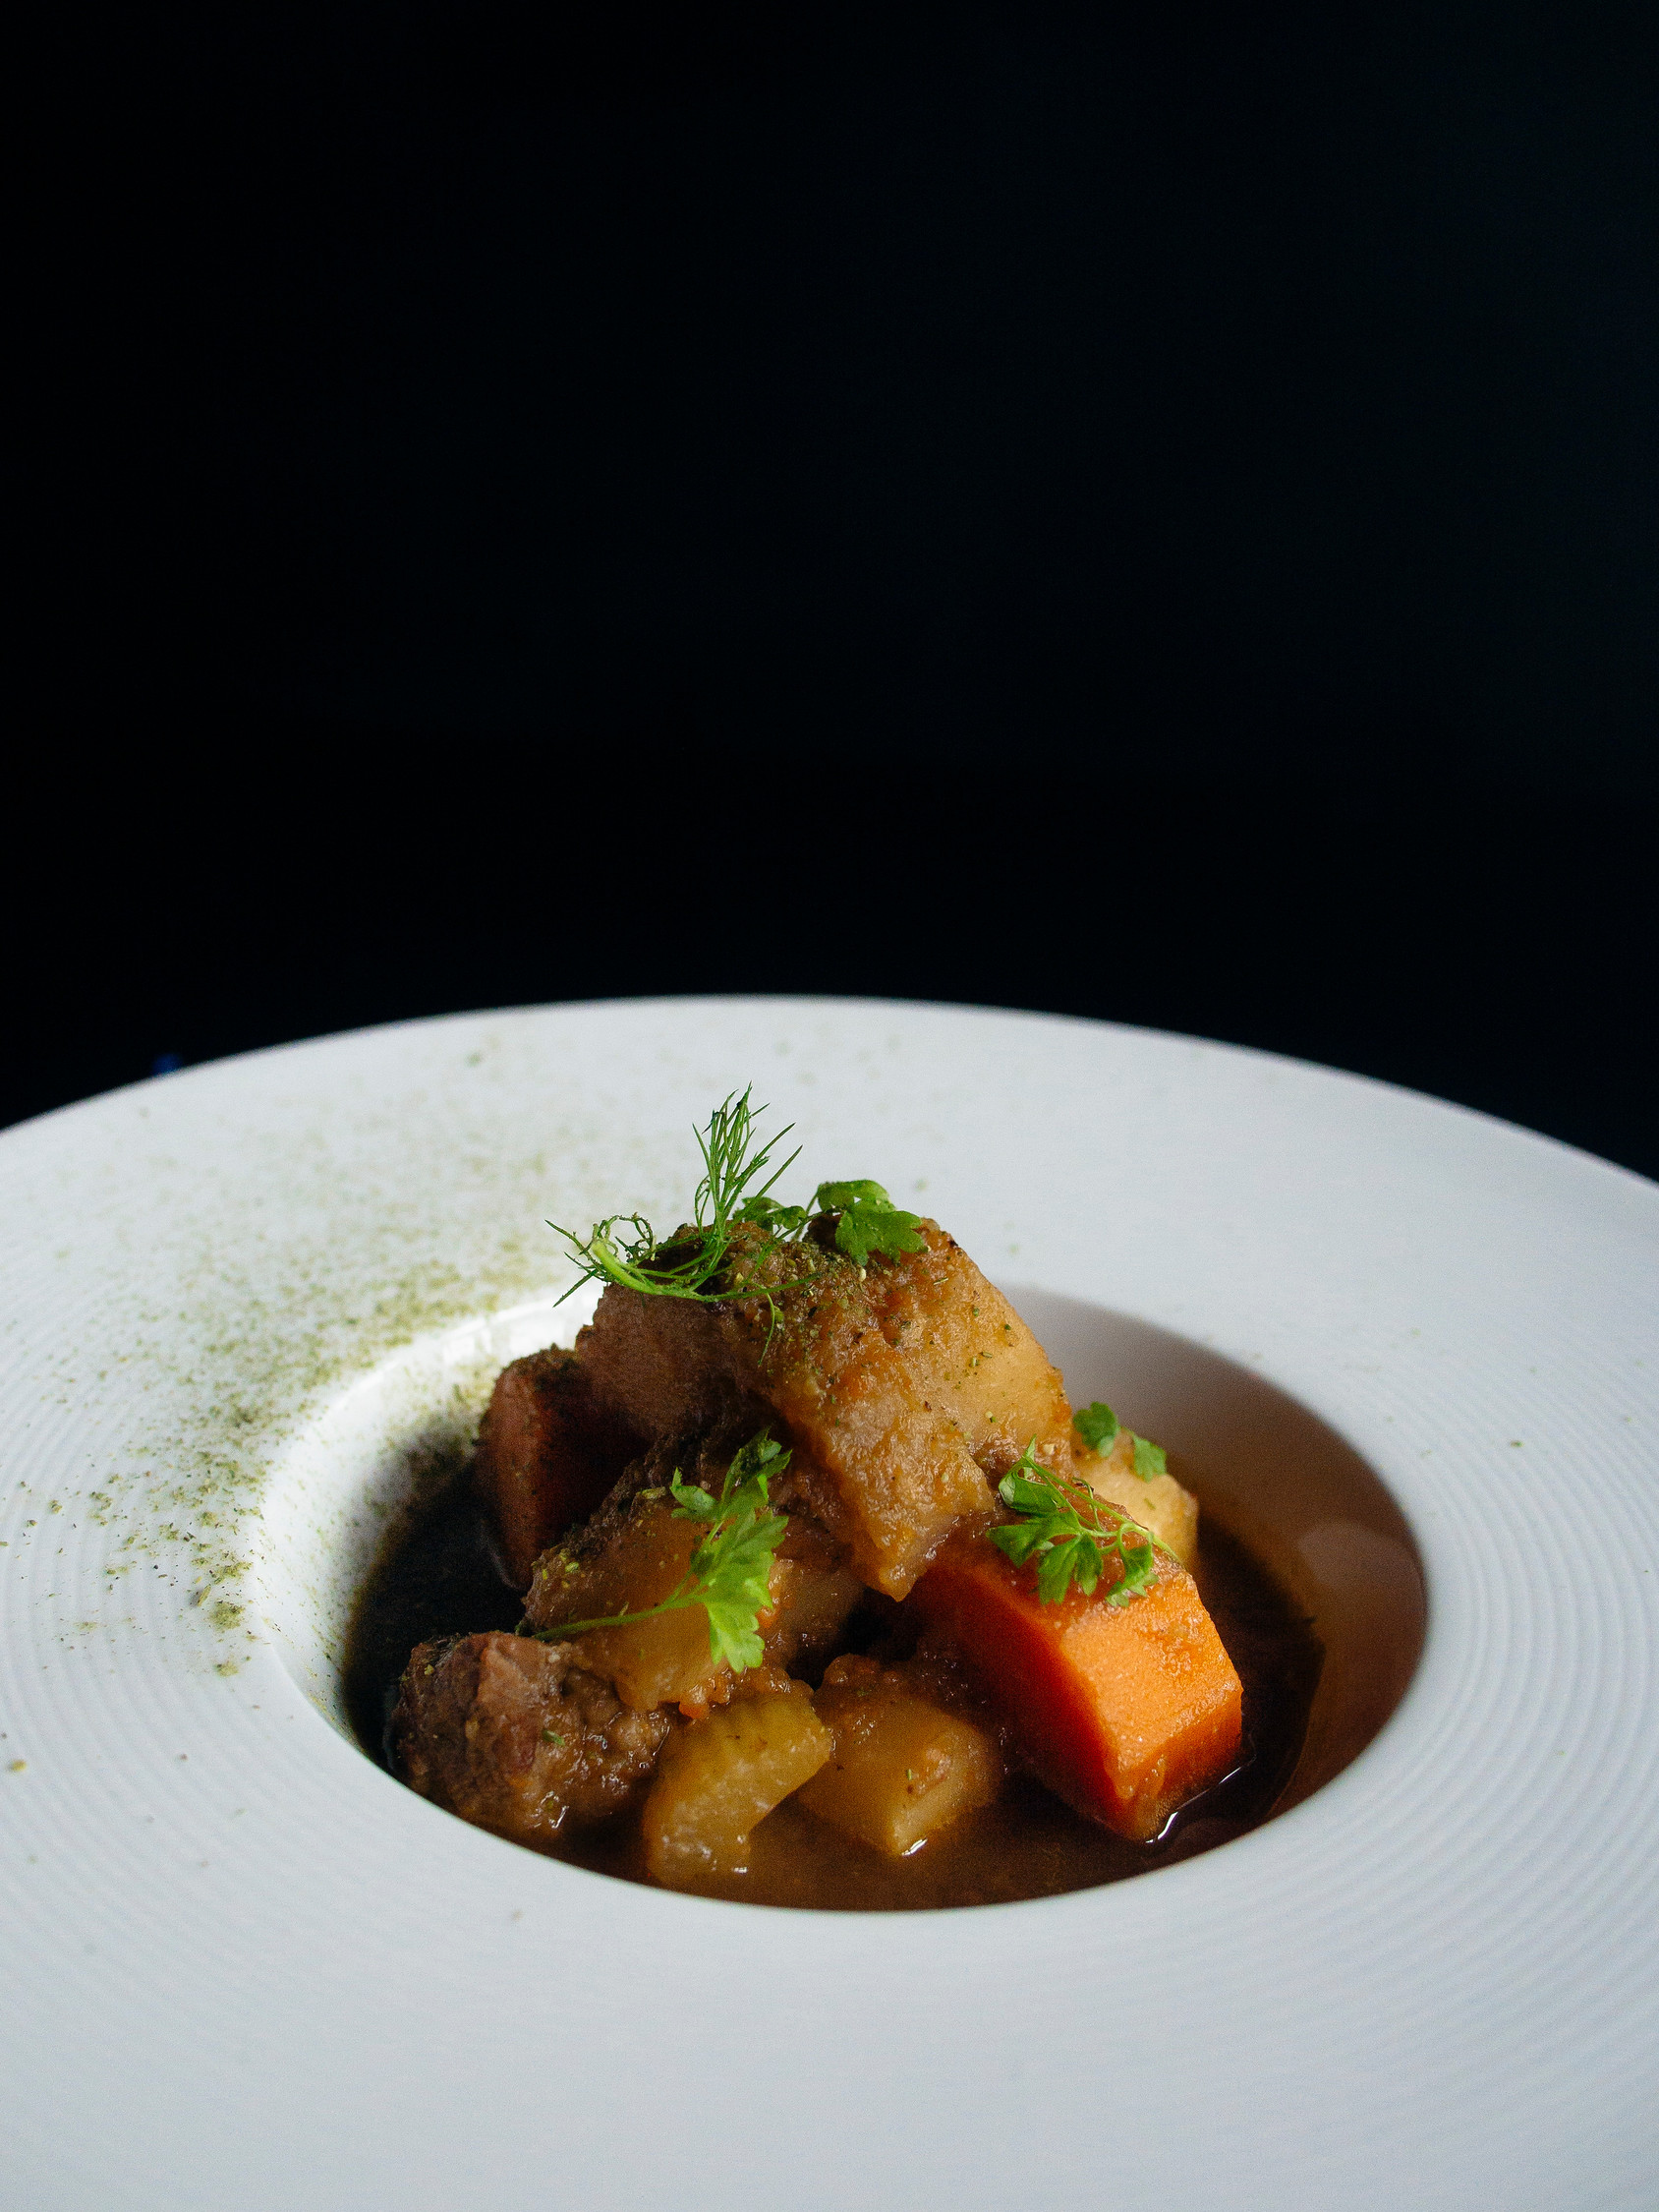 Beef Irish stew is one of the Dublin food you'll want to try.